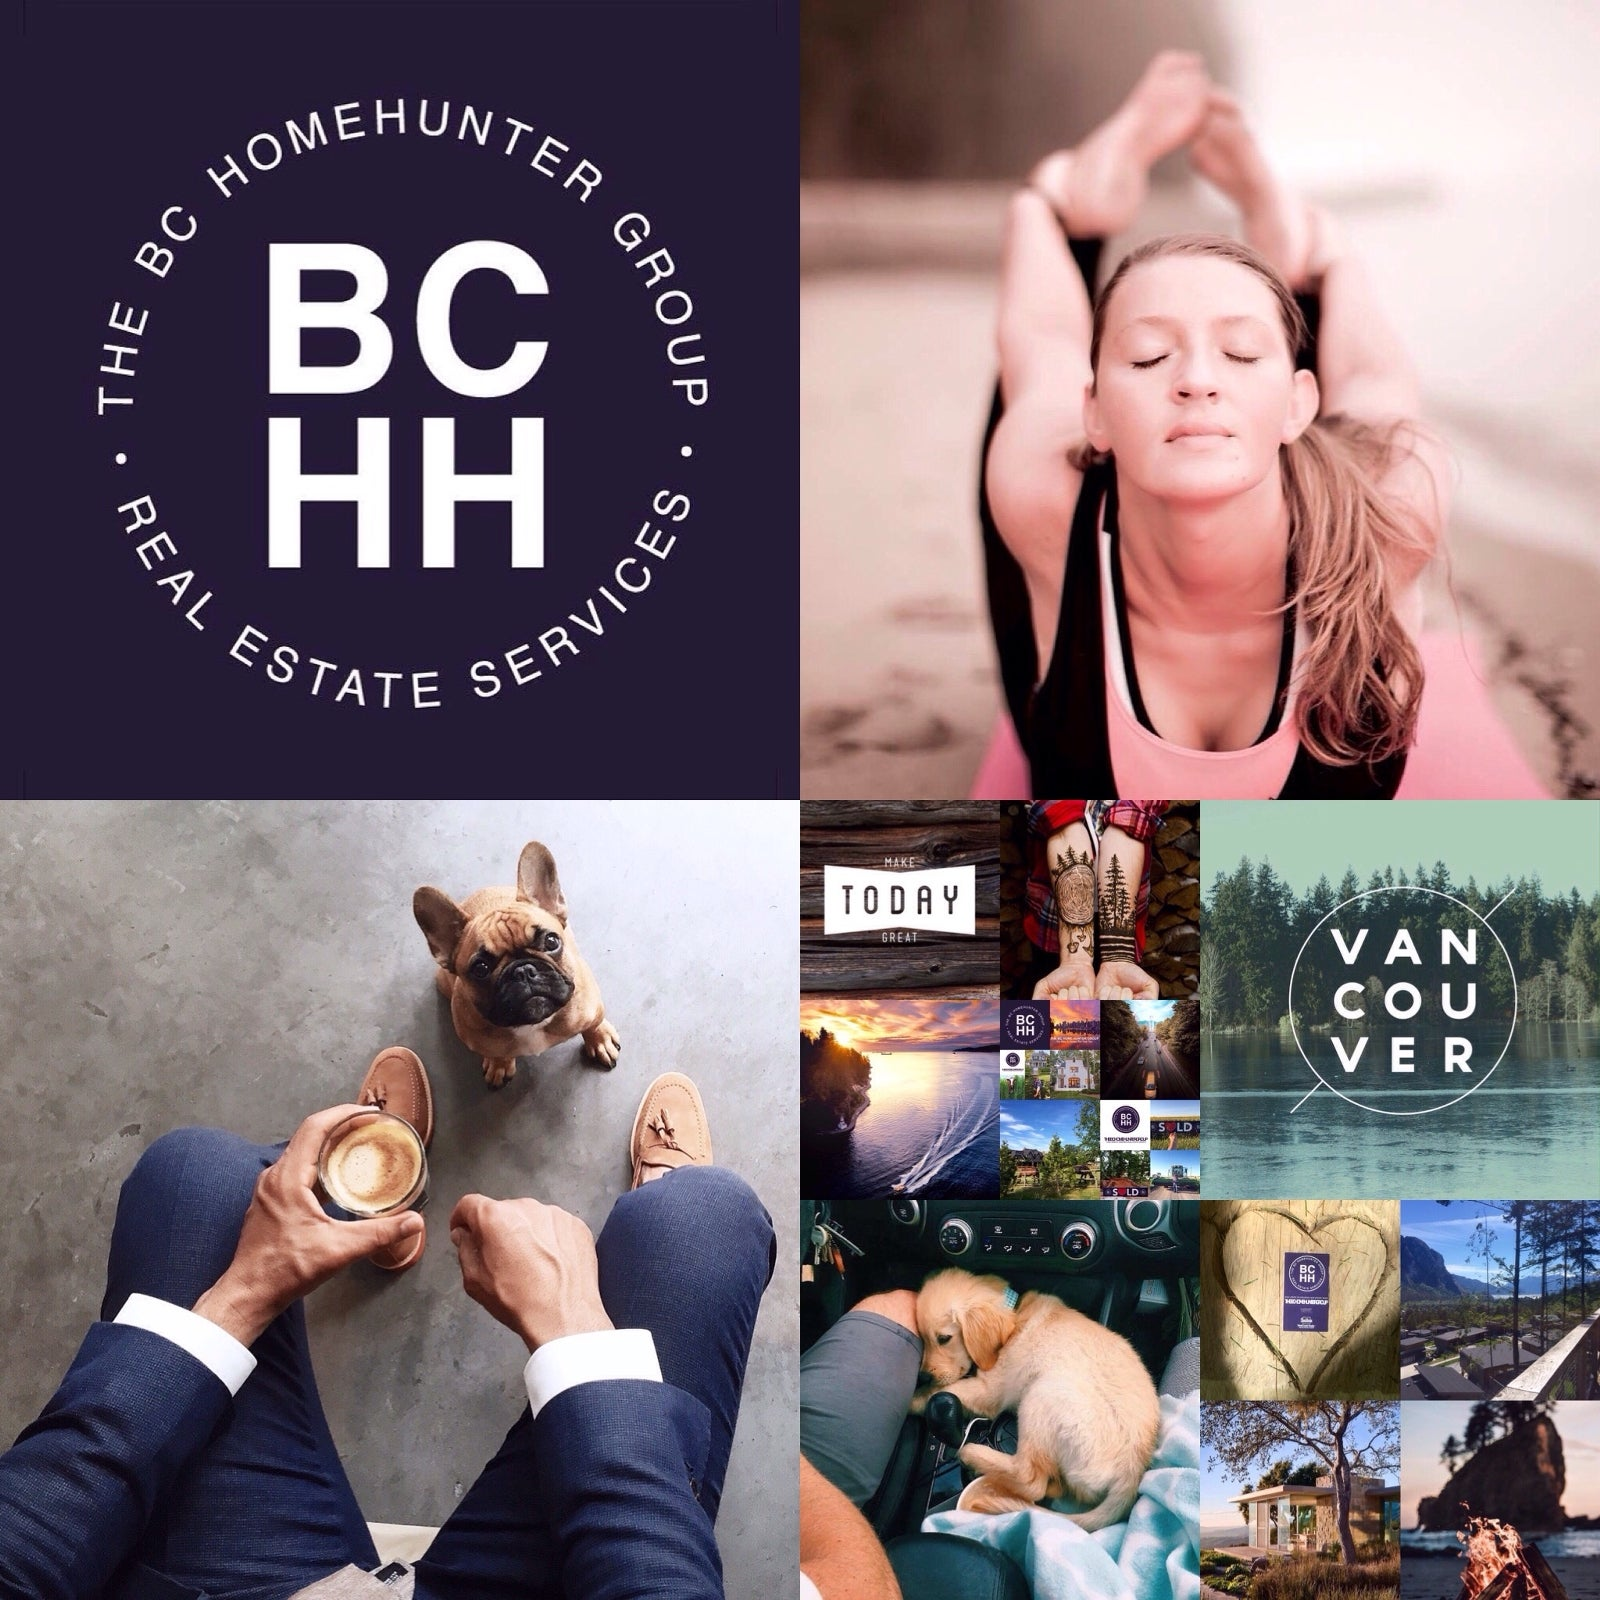 THE BC HOME HUNTER GROUP l AWARD WINNING URBAN & SUBURBAN METRO VANCOUVER l FRASER VALLEY l BC REAL ESTATE EXPERTS 604-767-6736 #BCHOMEHUNTER.COM #BCHH BCHHREALTY.COM #WESELLBC.COM #WELOVEBC.COM #Vancouver #WhiteRock #WestVancouver   #NorthVancouver #Langley #FraserValley #Burnaby #CoalHarbour #Kerrisdale #Kitsilano #PointGrey #Marpole #Dunbar #Oakridge #Coquitlam #EastVan #Yaletown #FraserValleyHomeHunter #VancouverHomeHunter #LynnValley #Lonsdale #VancouverHomeHunter #FraserValleyHomeHunter  @BCHOMEHUNTER  THE BC HOME HUNTER GROUP  AWARD WINNING URBAN & SUBURBAN REAL ESTATE TEAM WITH HEART 604-767-6736  METRO VANCOUVER I FRASER VALLEY I BC  #Vancouver #WhiteRock #SouthSurrey #Starbucks #WestVancouver #Langley #MapleRidge #NorthVancouver #Langley #FraserValley #Burnaby #FortLangley #PittMeadows #Delta #Richmond #CoalHarbour #Surrey #Abbotsford #FraserValley #Kerrisdale #Cloverdale #Coquitlam #EastVan #Richmond #PortMoody #Yaletown #CrescentBeach #BCHHREALTY #MorganCreek #PortMoody #Burnaby #WeLoveBC #OceanPark #FraserValleyHomeHunter #VancouverHomeHunter